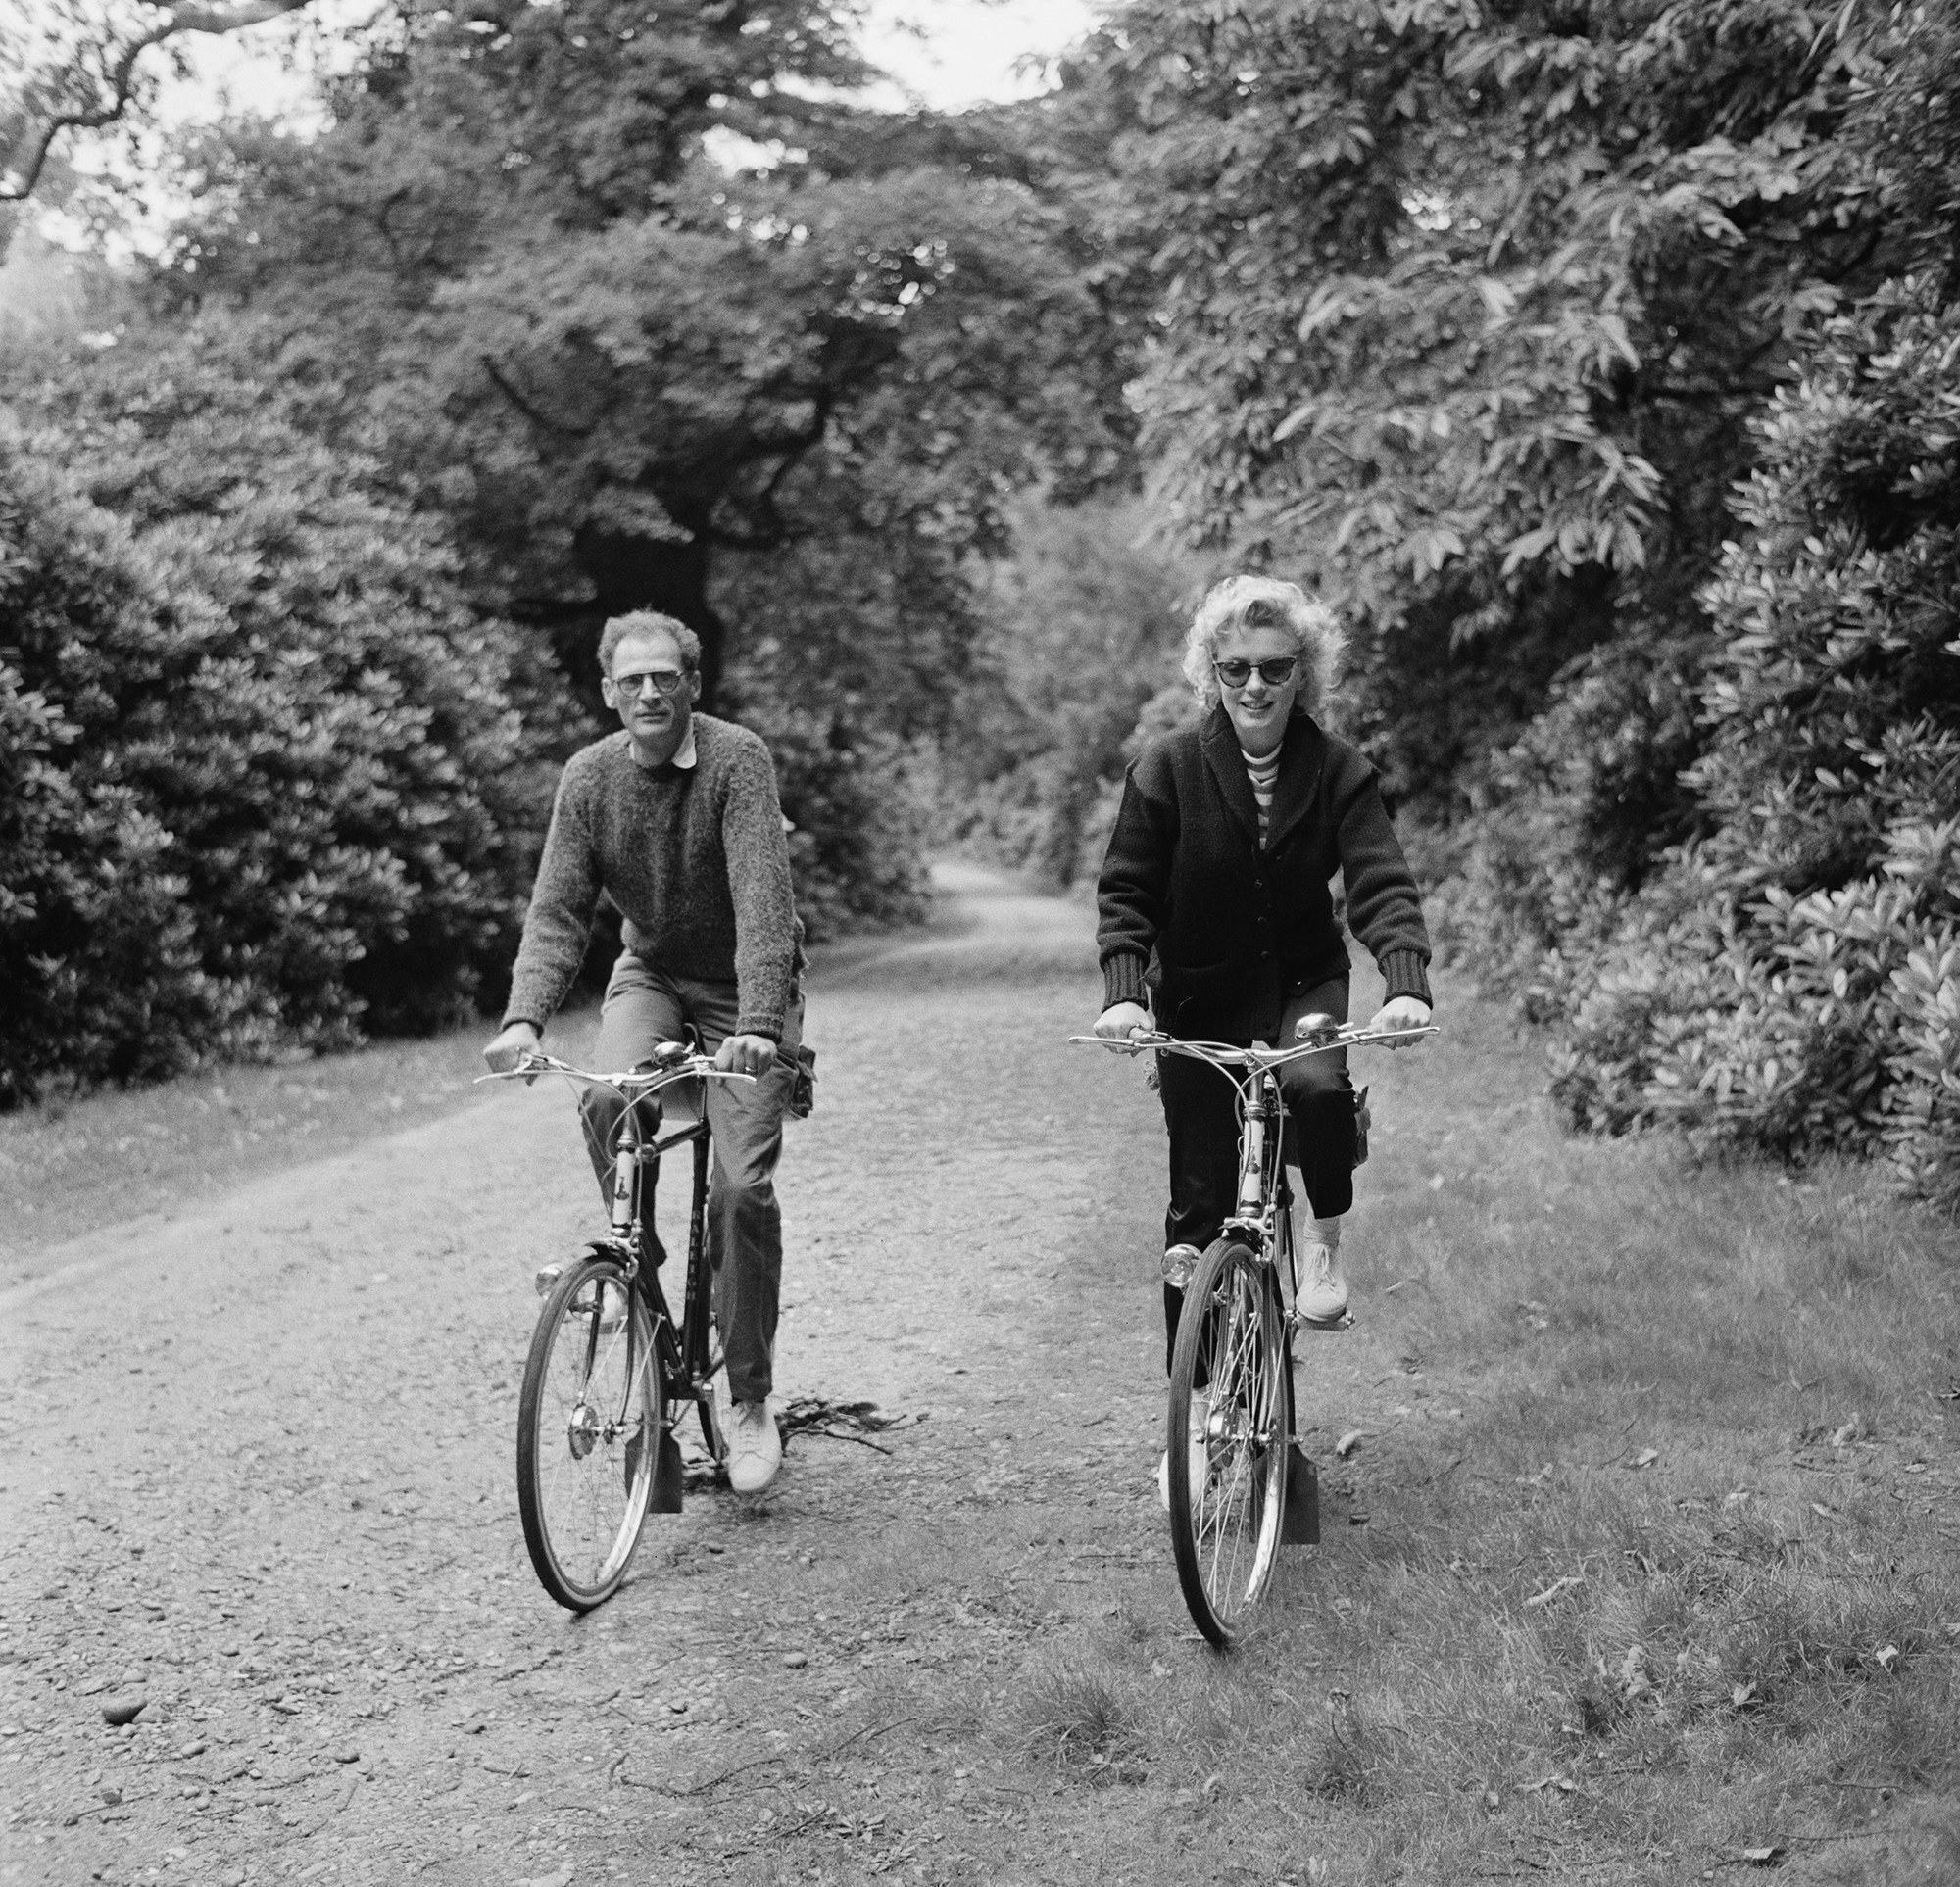 Marilyn Monroe riding a bike with her husband